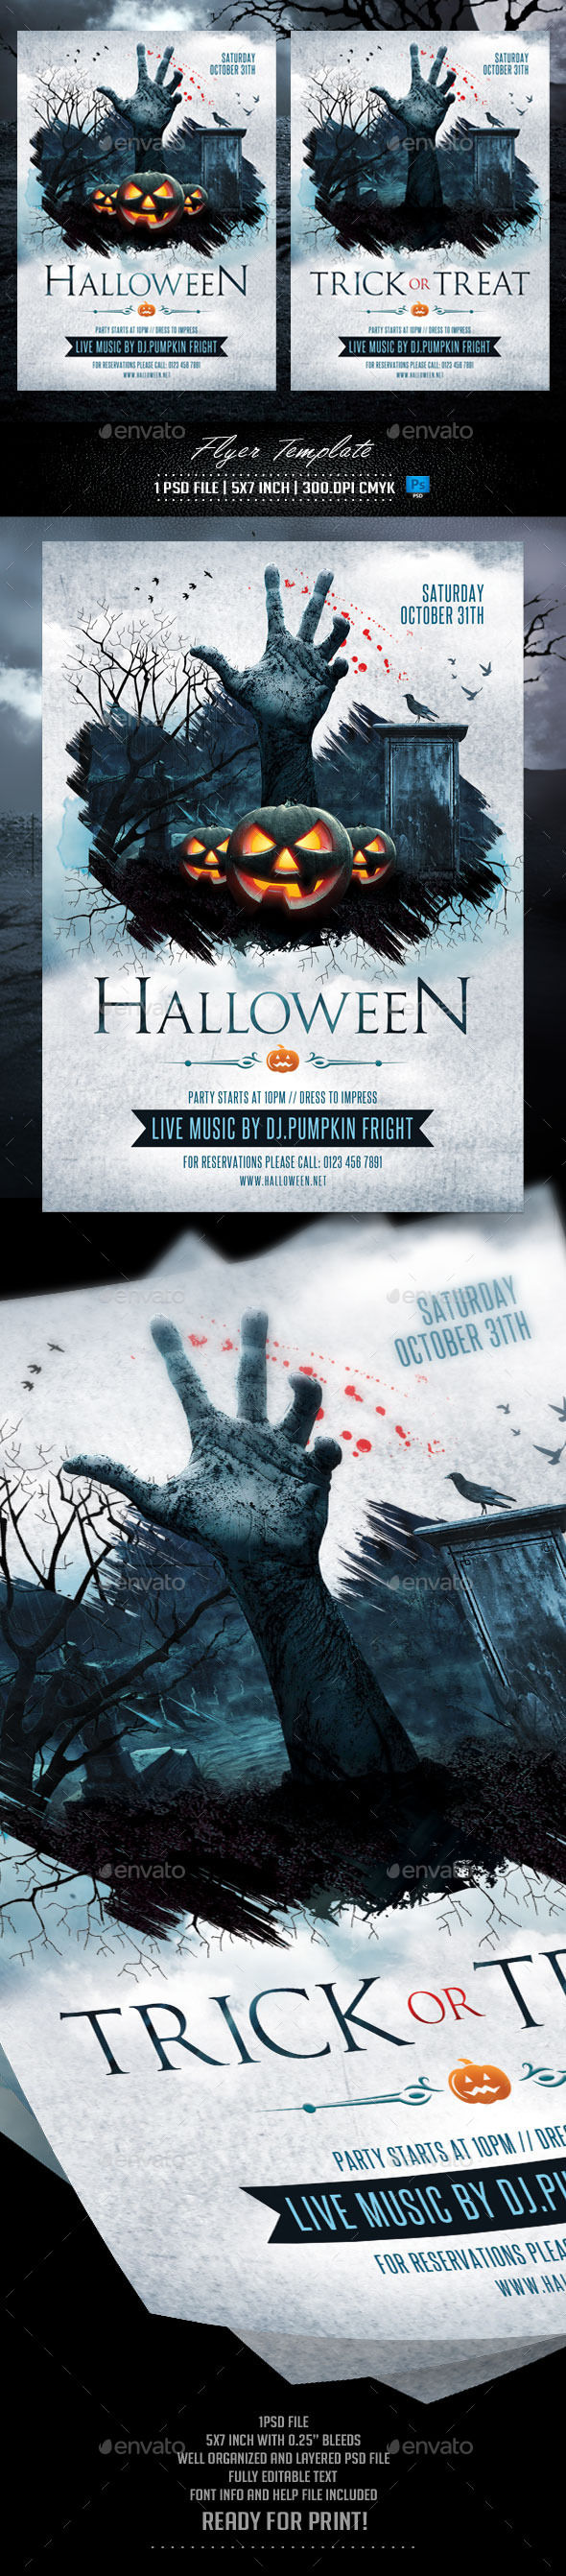 Halloween And Trick Or Treat Flyer Template by Briell (Halloween party flyer)